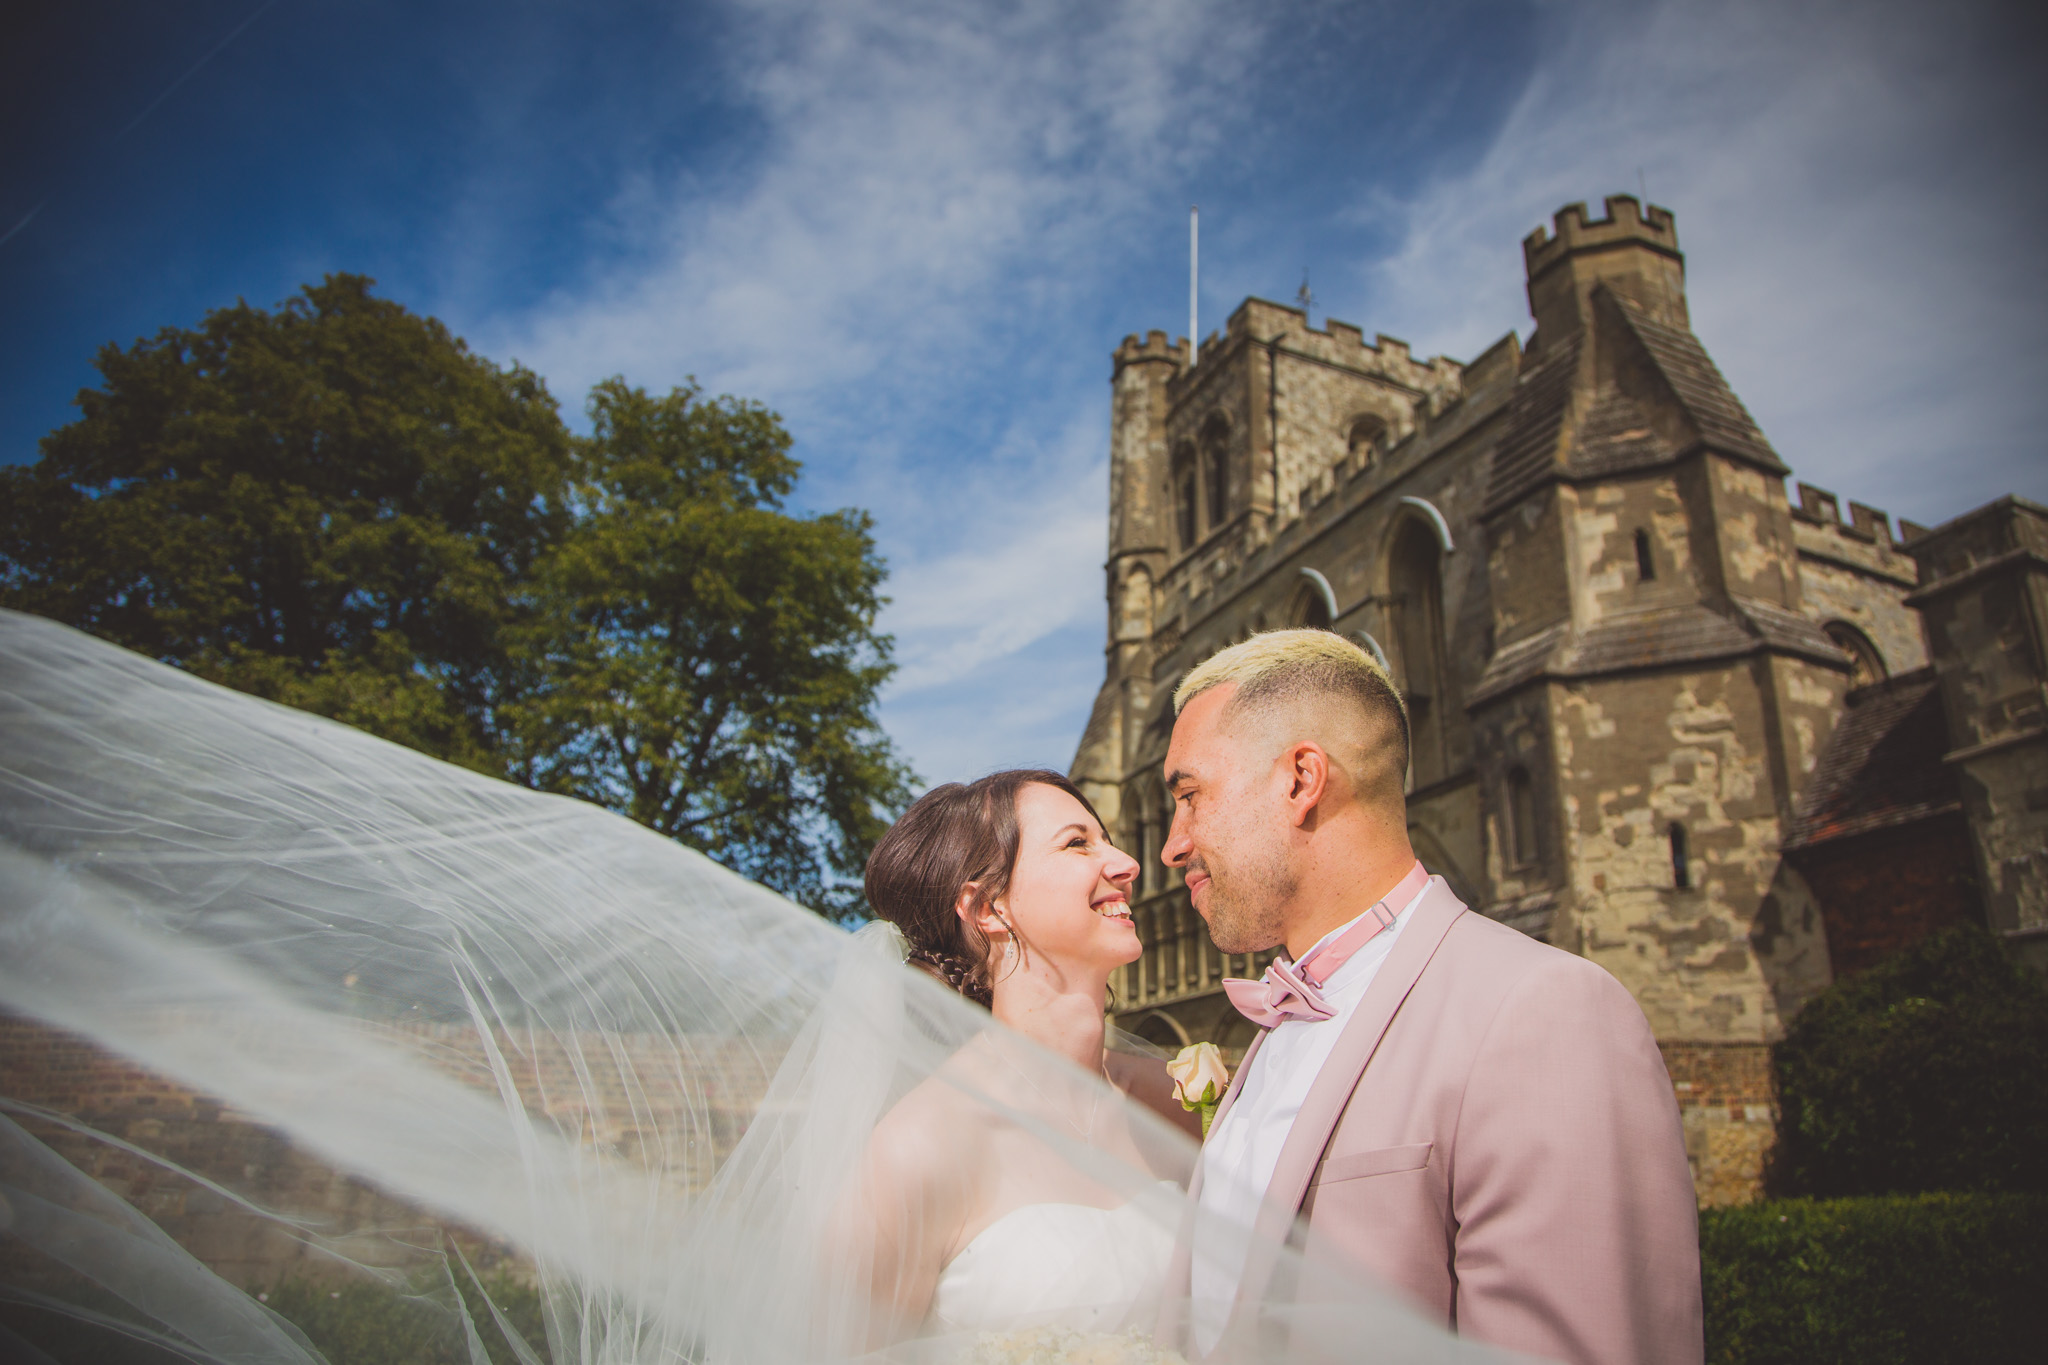 Priory church of St Peter Dunstable & Luton Wall Garden: Alexa and Jordan Wedding Photography